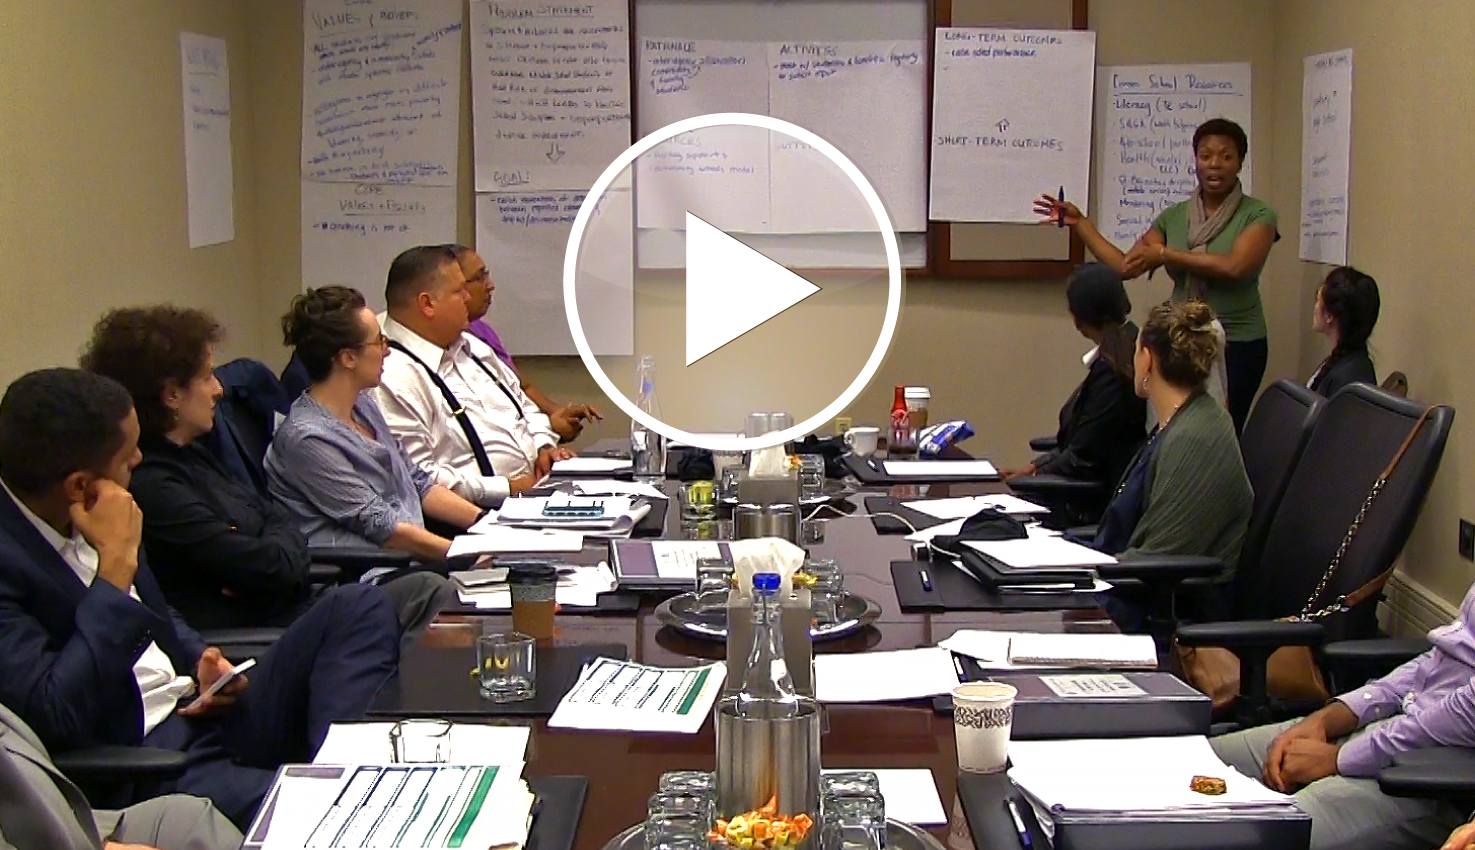 VIDEO | How research can offer solutions to the school-to-prison pipeline